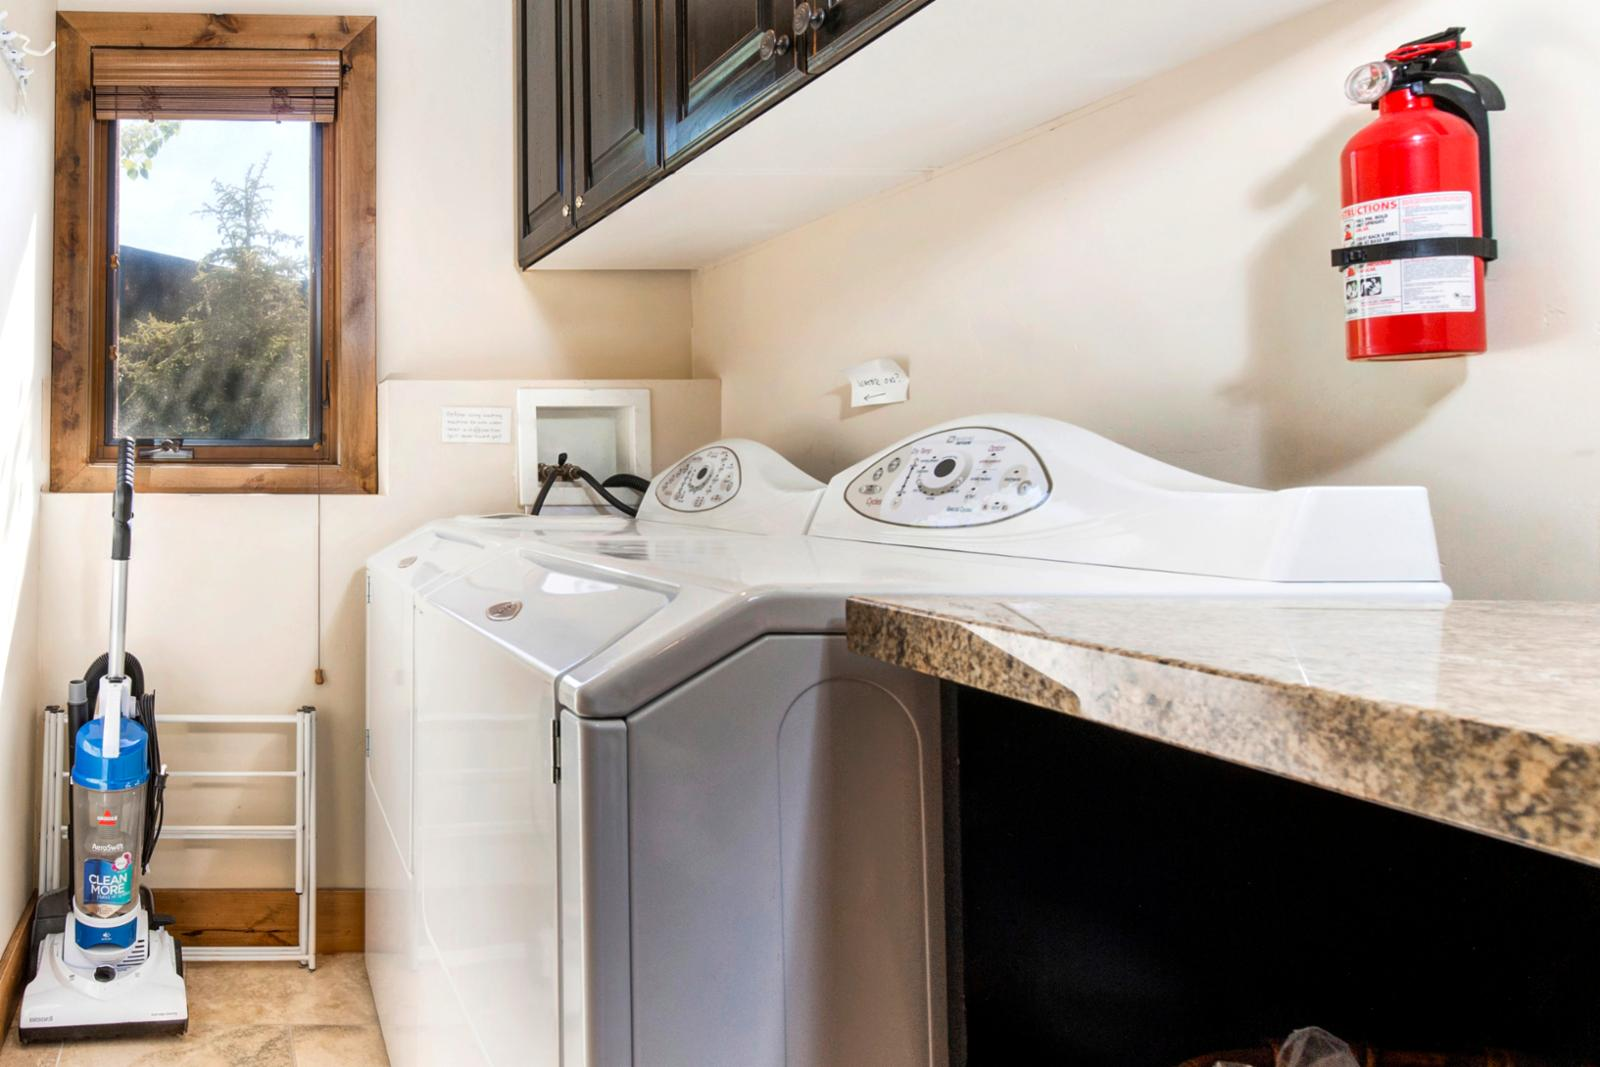 Full size washer | dryer for your convenience right off the main level